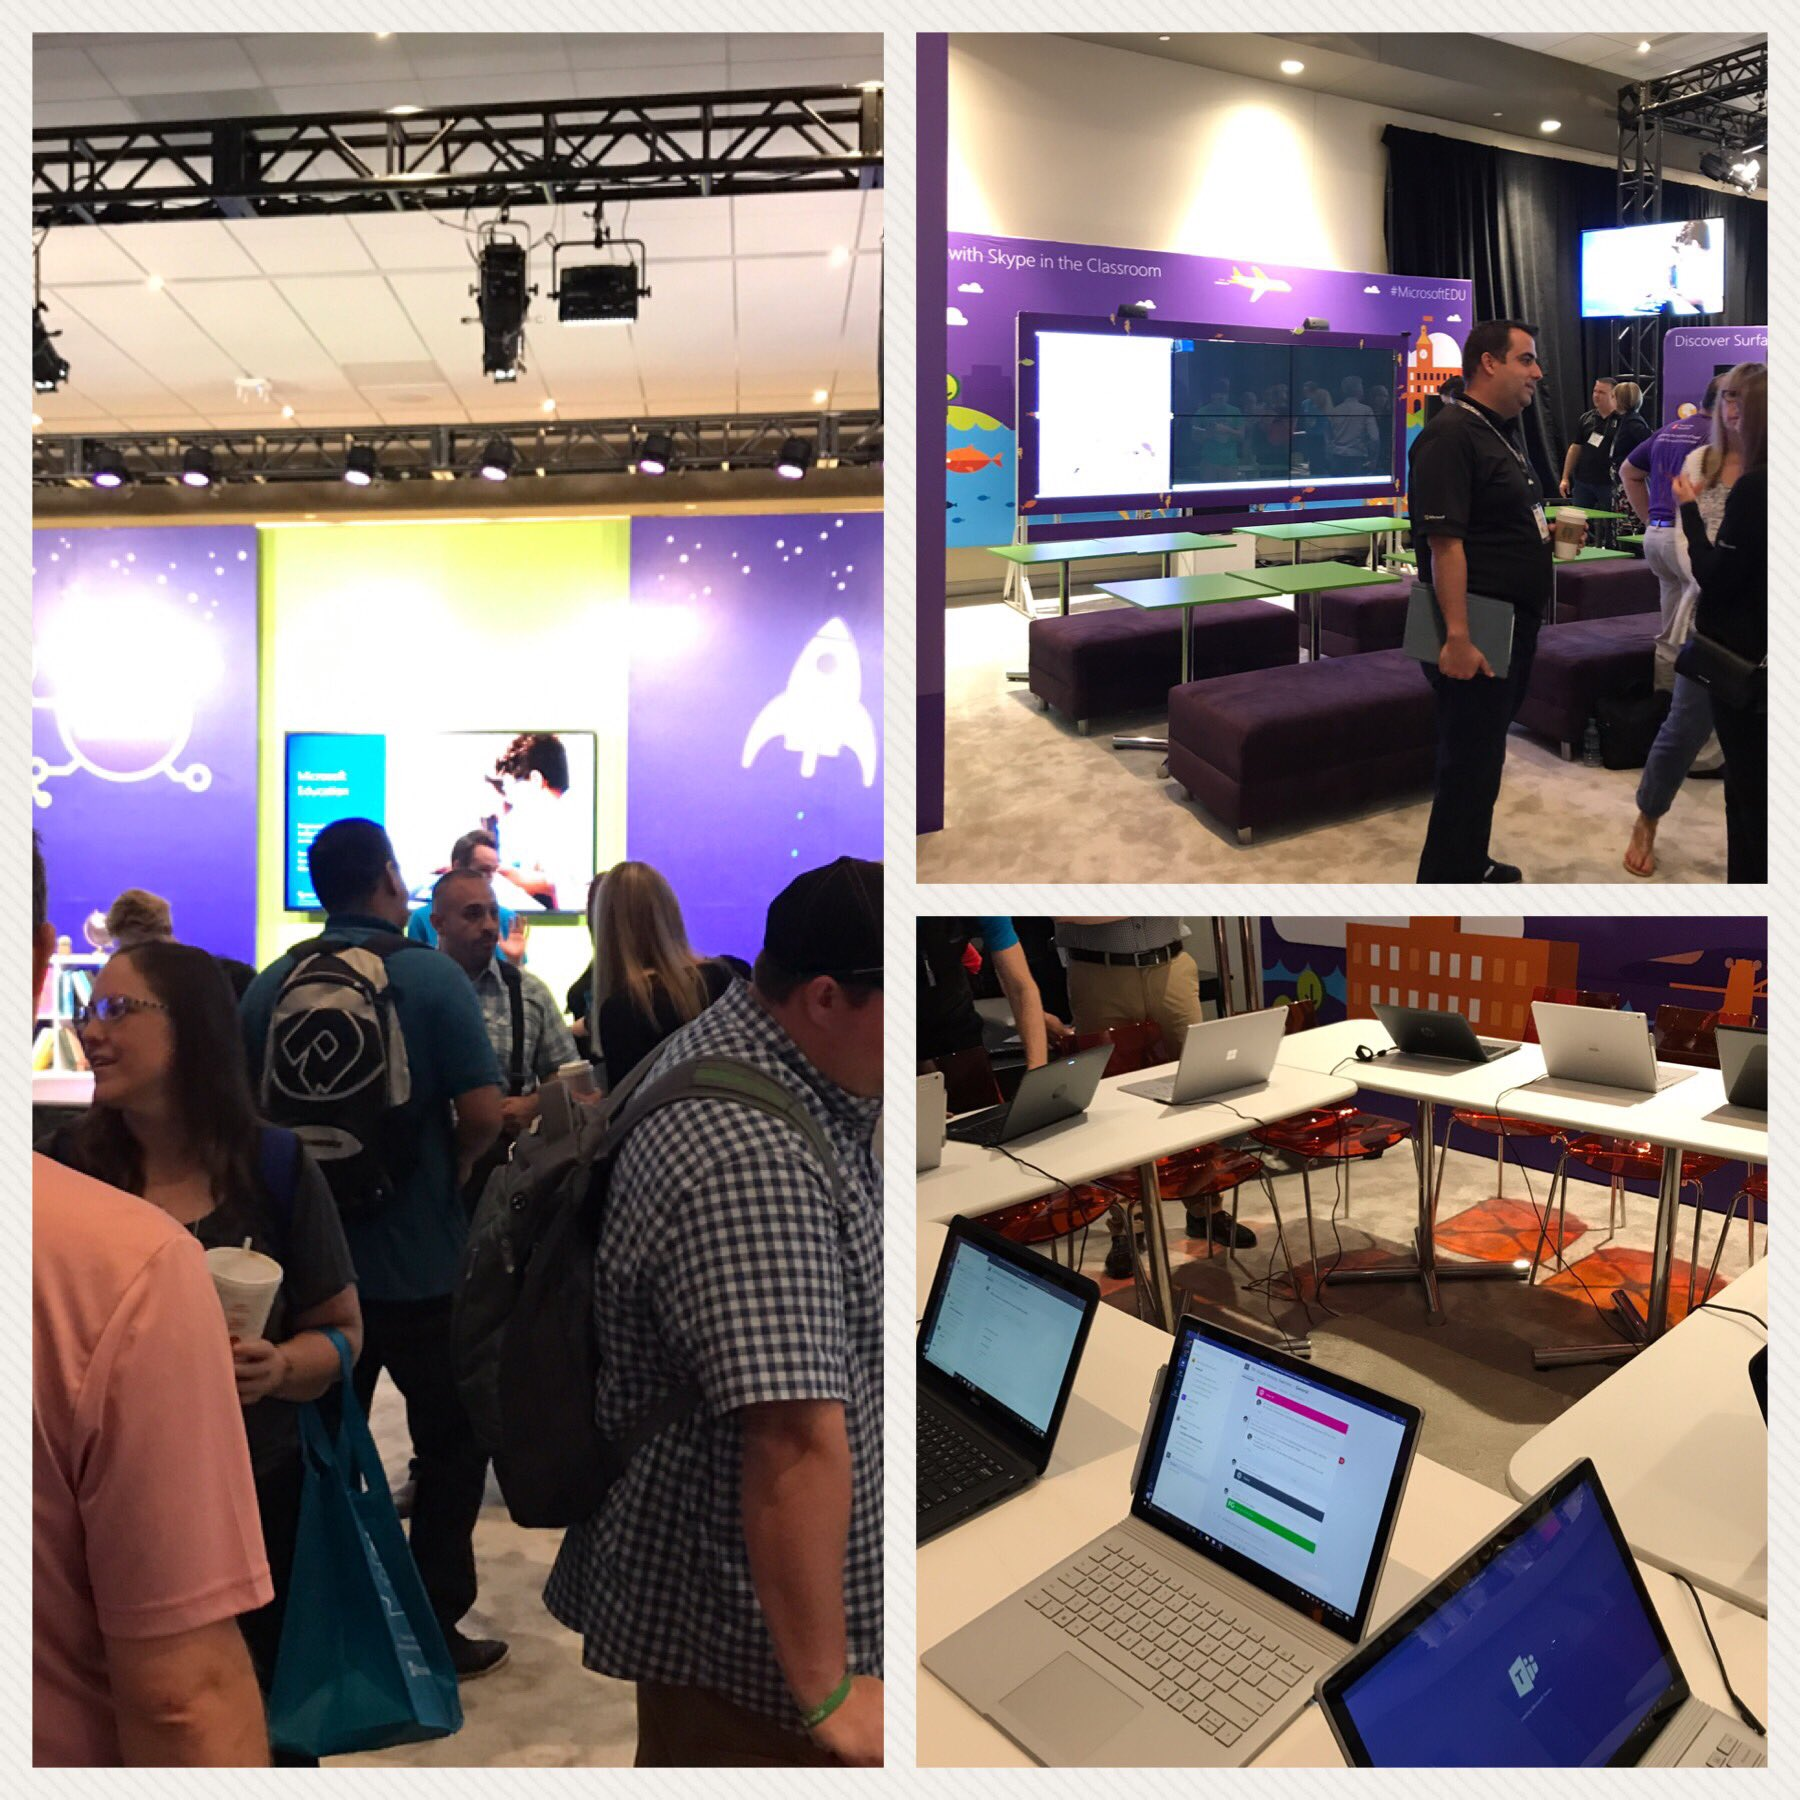 Checking out the Microsoft Experience. #ISTE17 #fcpsiste @fcpsoit https://t.co/eHnBrFyihv